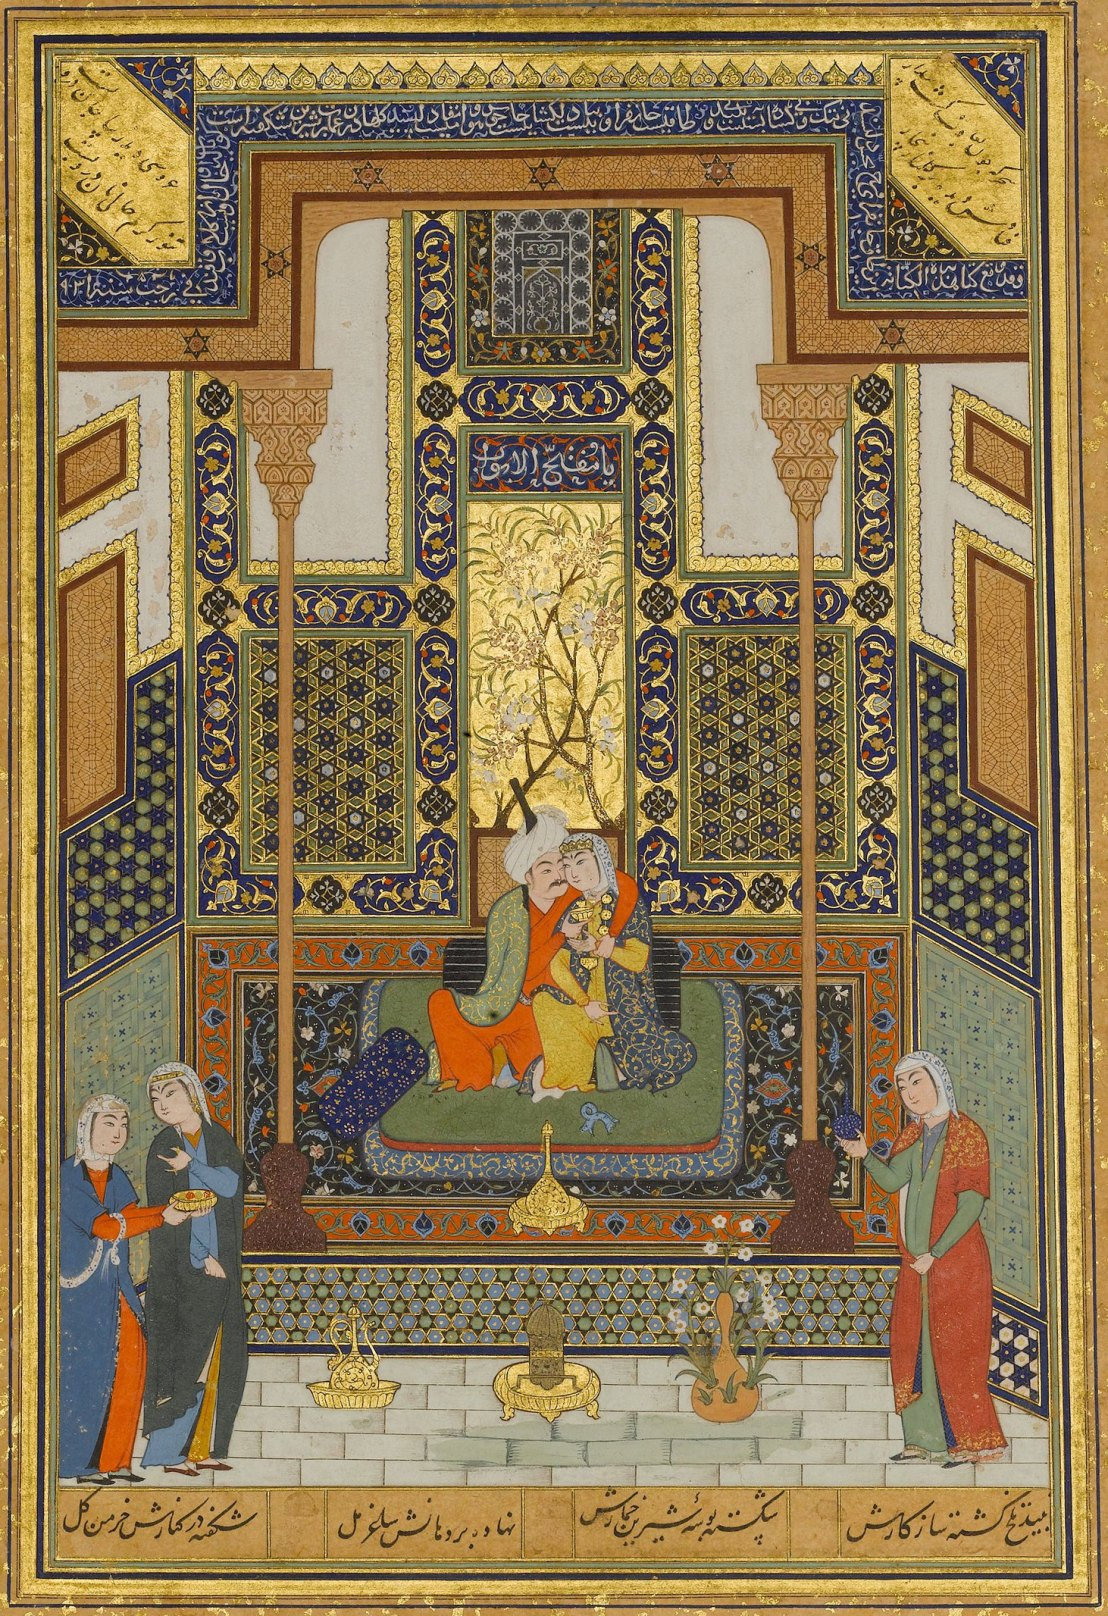 """Marriage of Khusrau and Shirin"" Folio from a Khamsa (Quintet) of Nizami. Calligrapher: Sultan Muhammad Nur (ca. 1472–ca. 1536), Artist: Painting by Shaikh Zada. present-day Afghanistan, Herat. – The Metropolitan Museum of Arts."